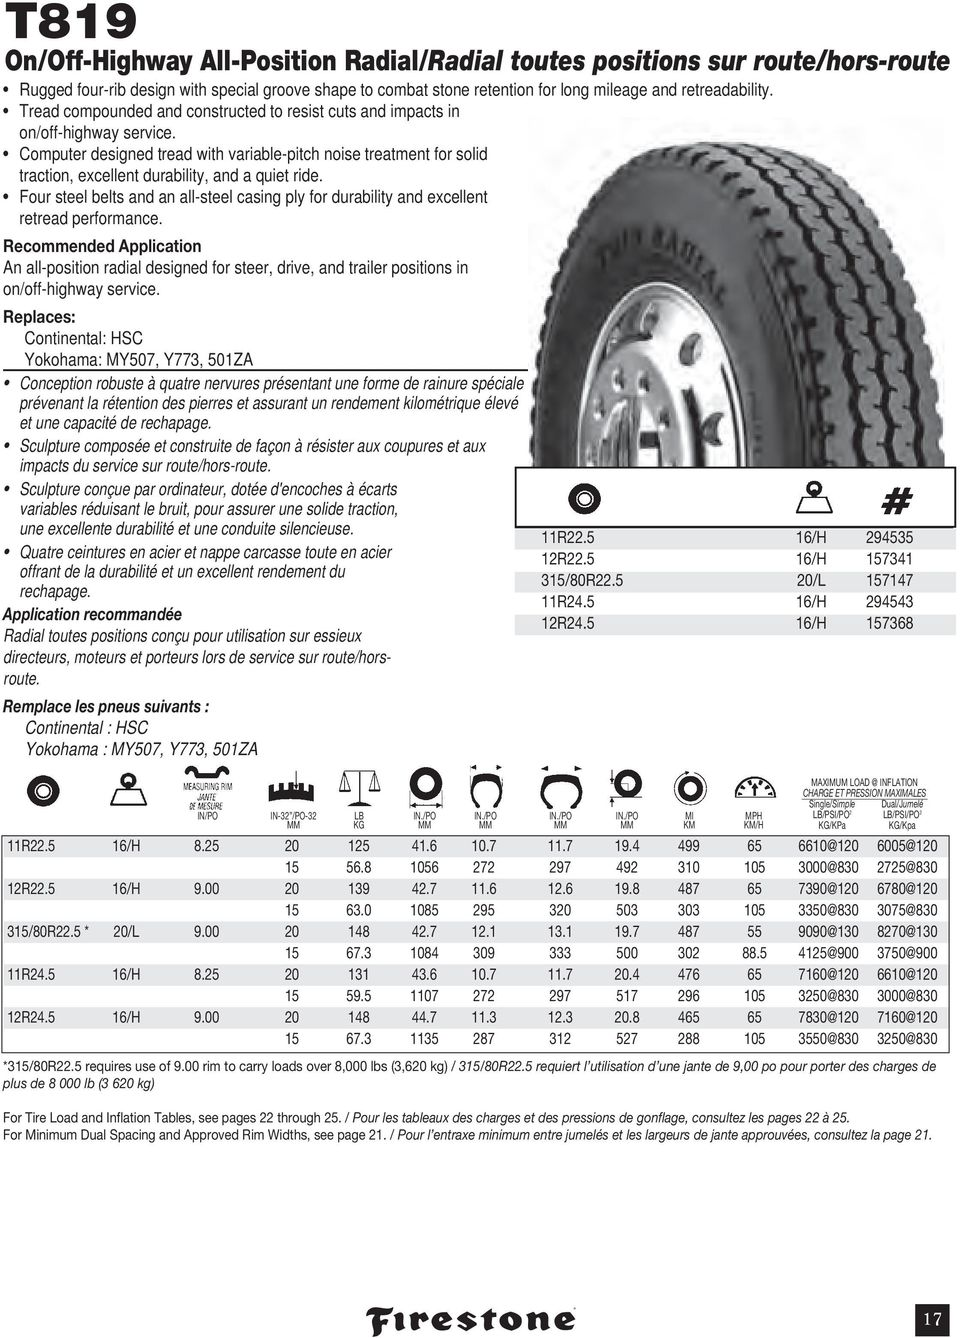 Computer designed tread with variable-pitch noise treatment for solid traction, excellent durability, and a quiet ride.